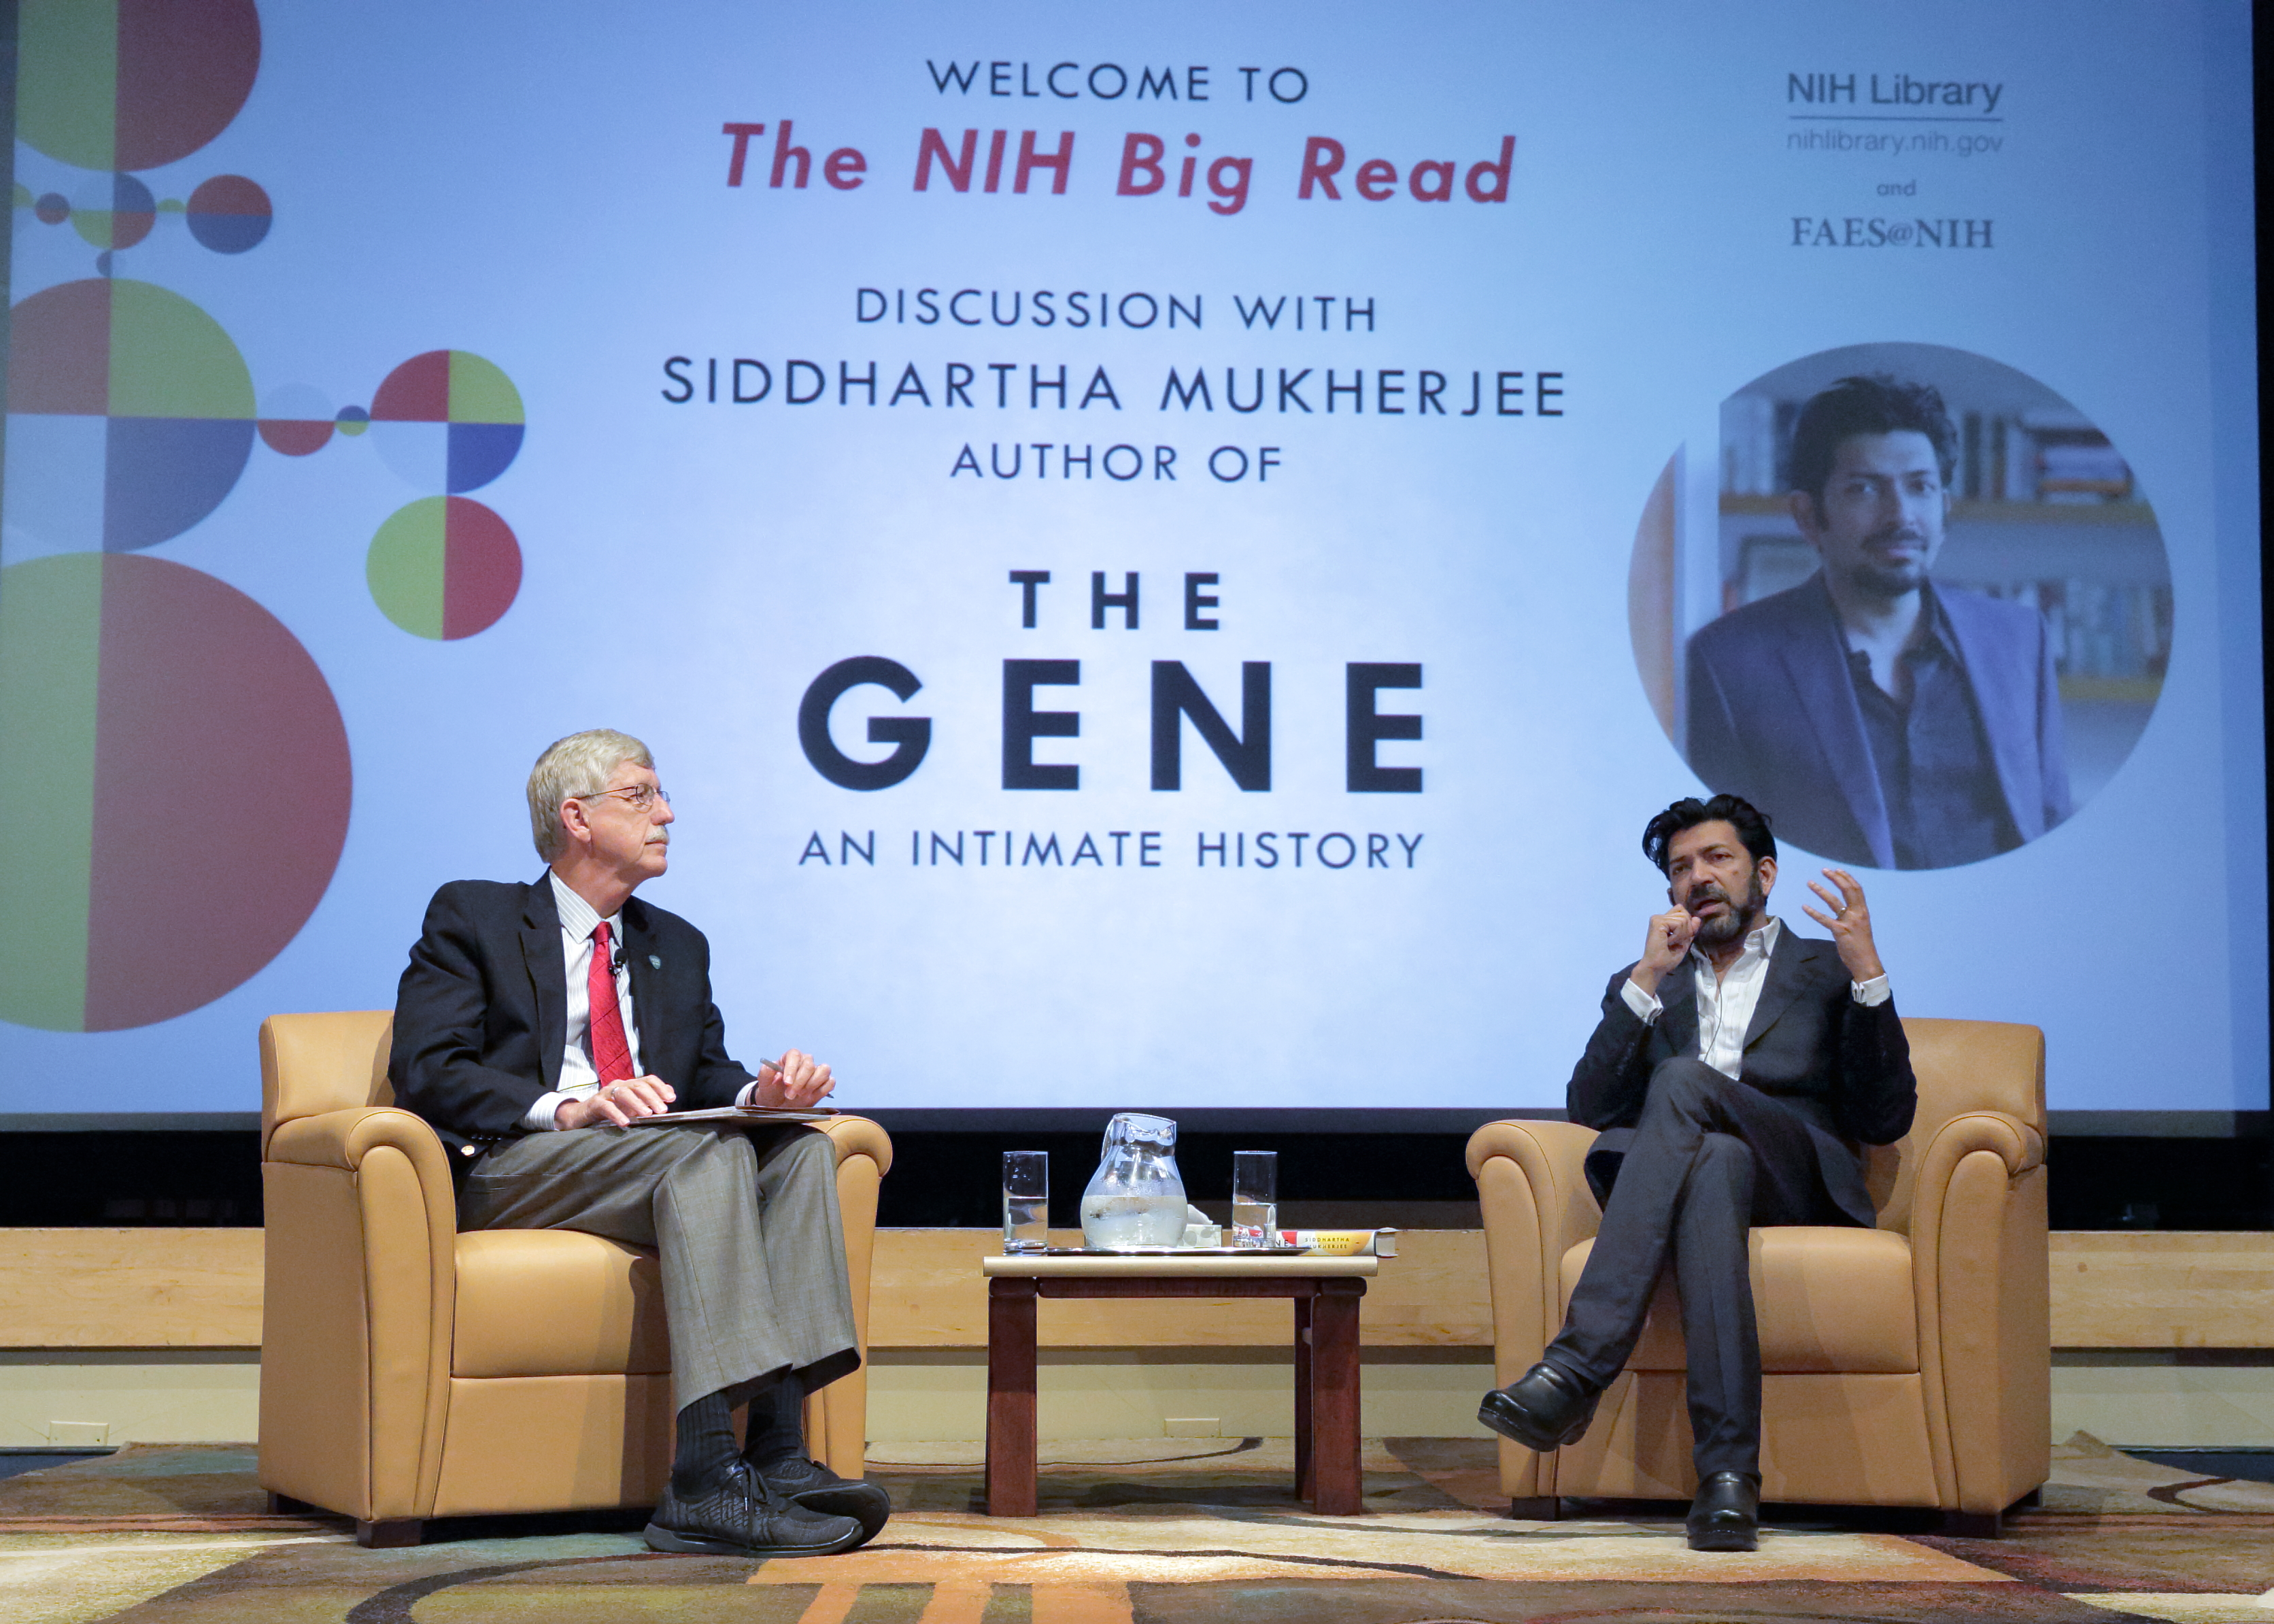 Dr. Collins discusses The Gene with Dr. Siddhartha Mukherjee